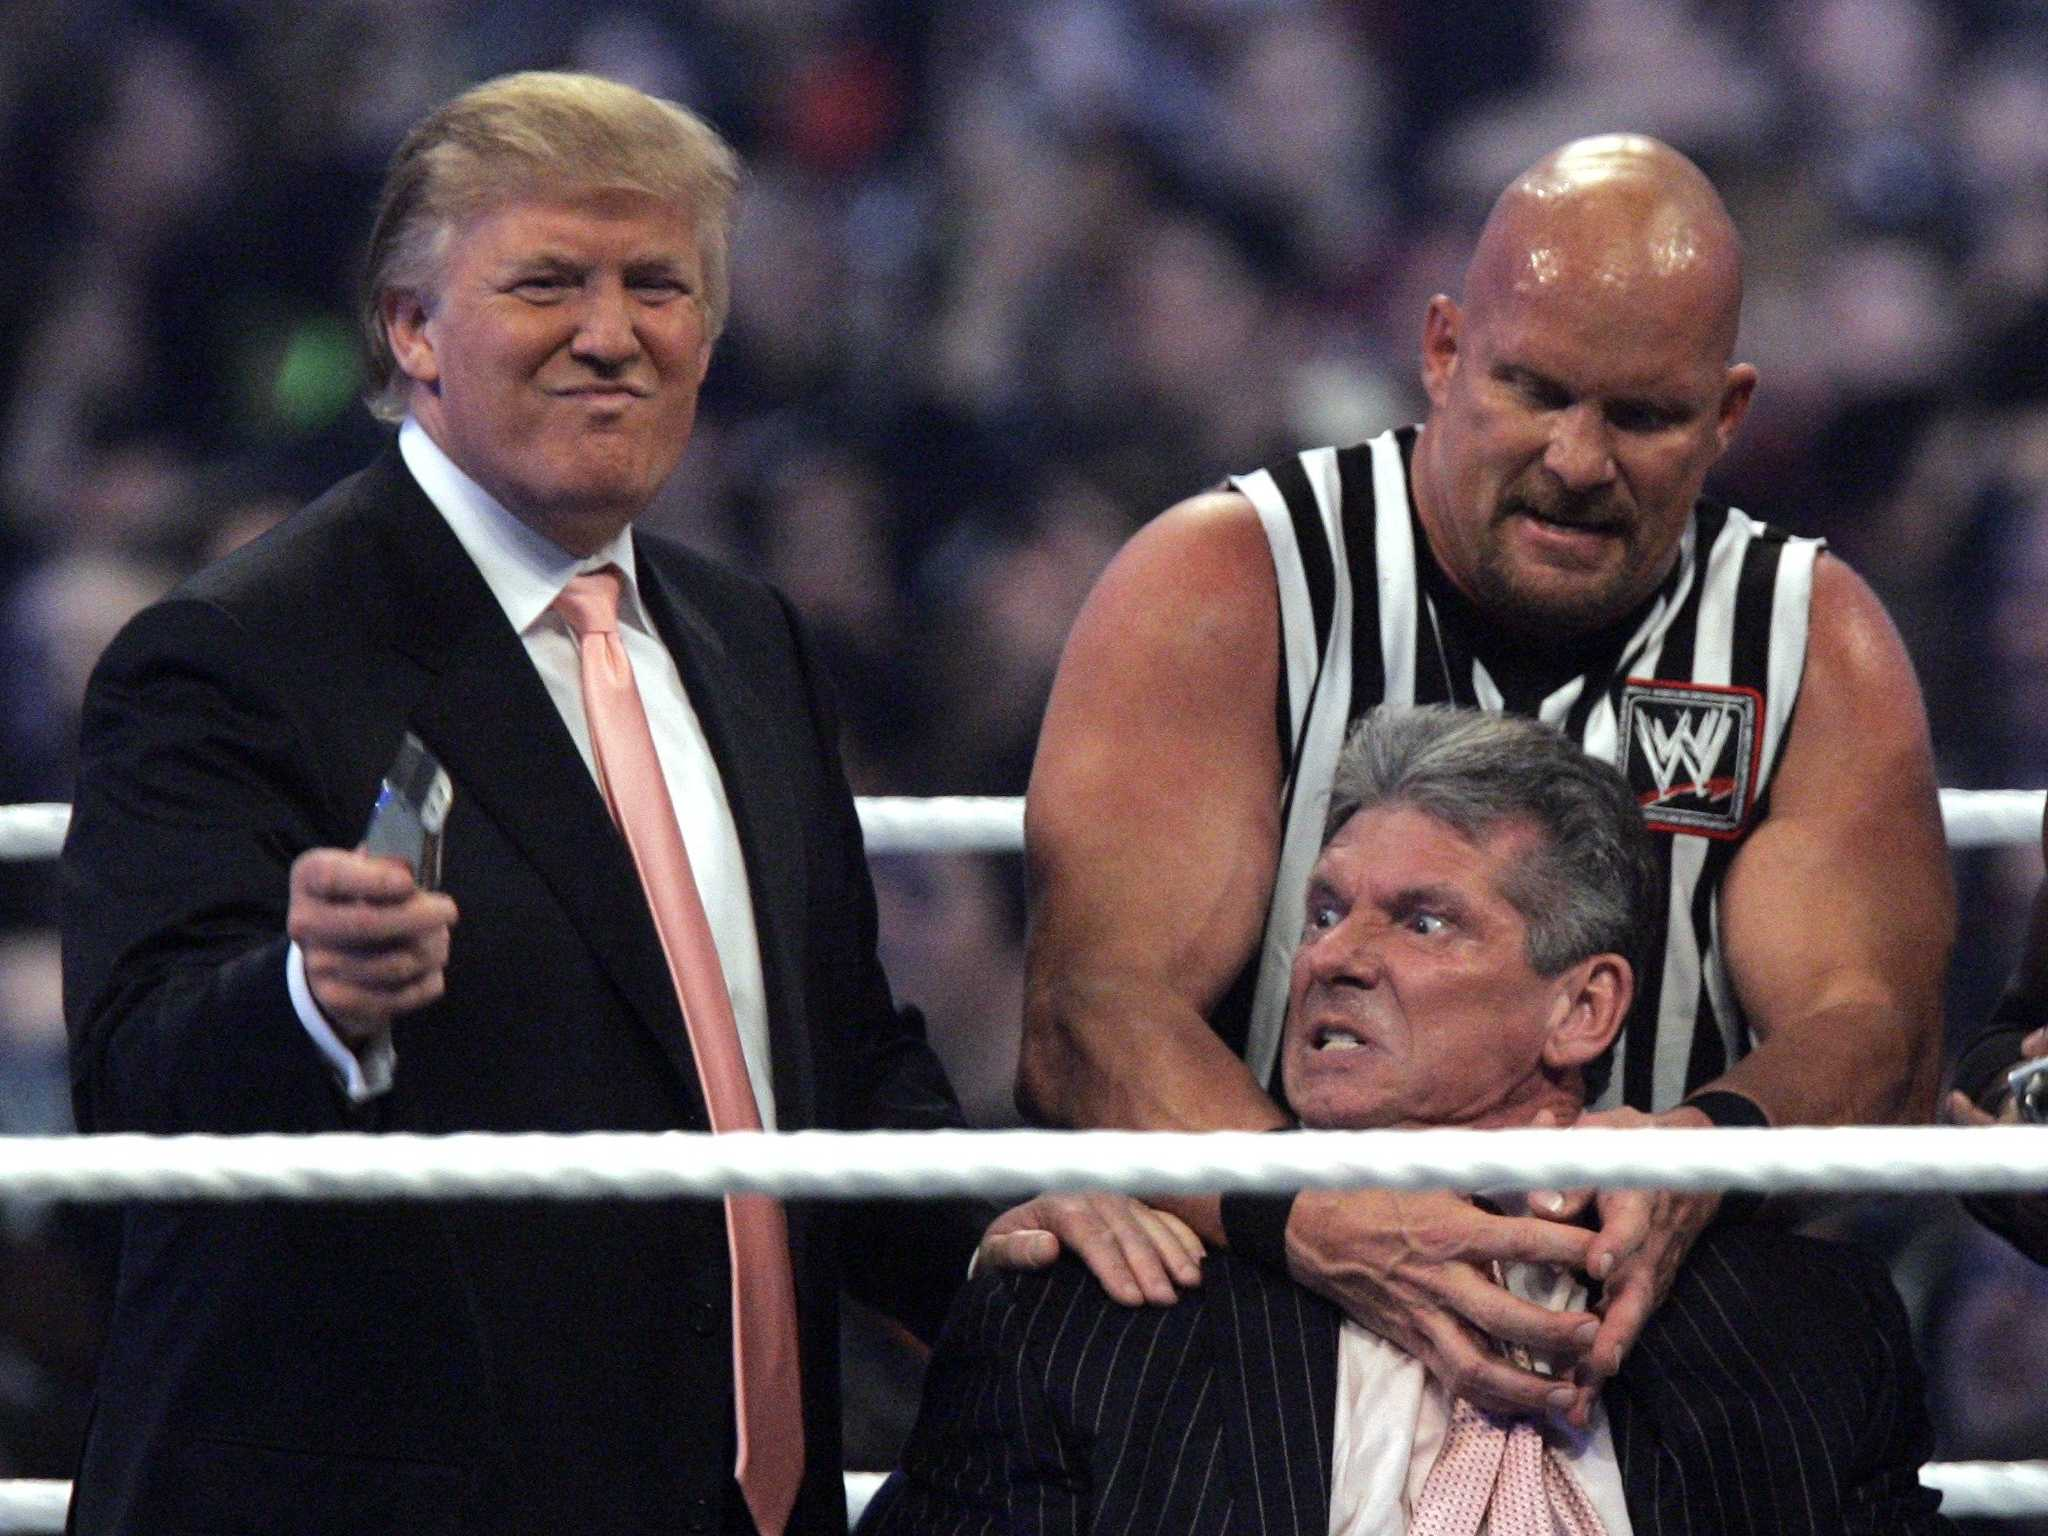 wrestling demonstration including Donald Trump